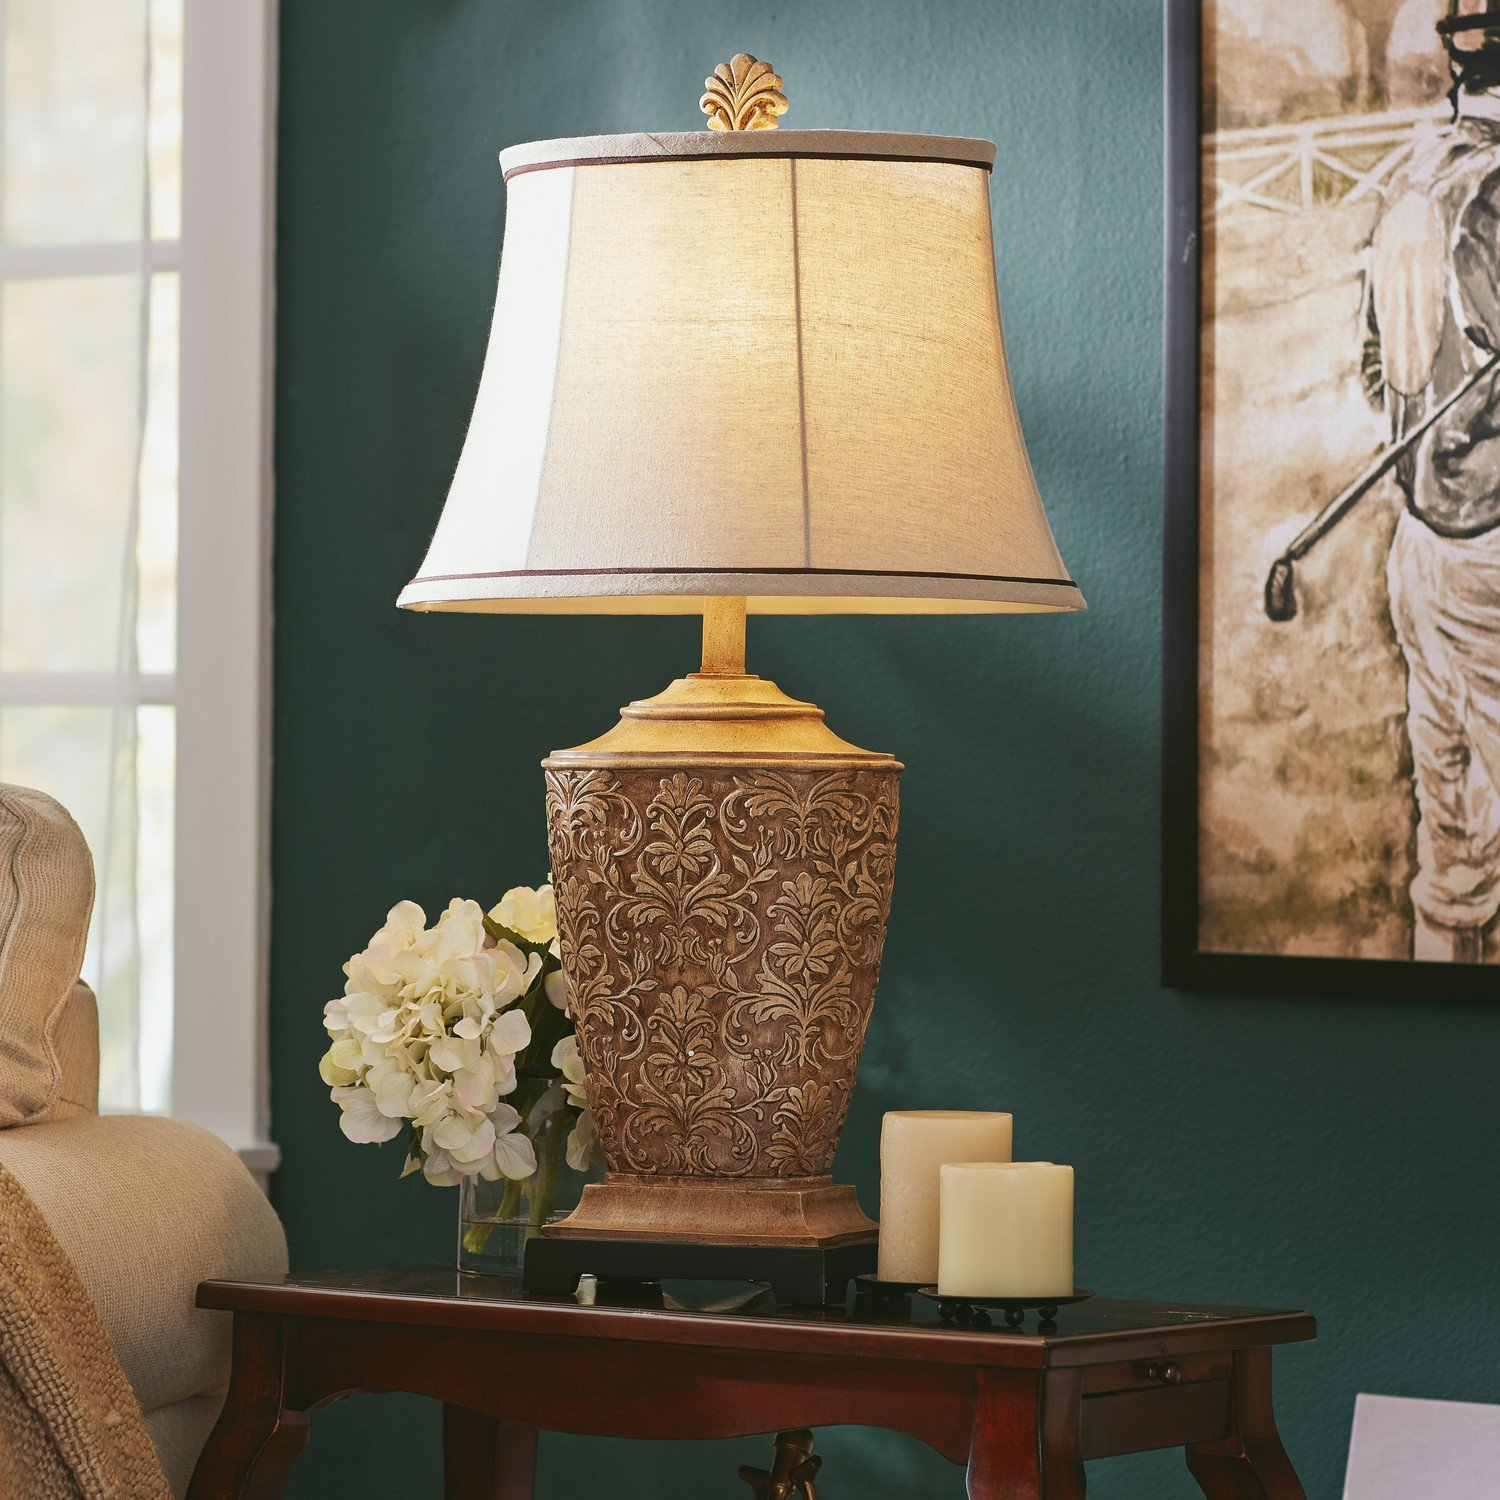 Traditional Living Room Lamps Traditional Table Lamps for Living Room Amazing Table